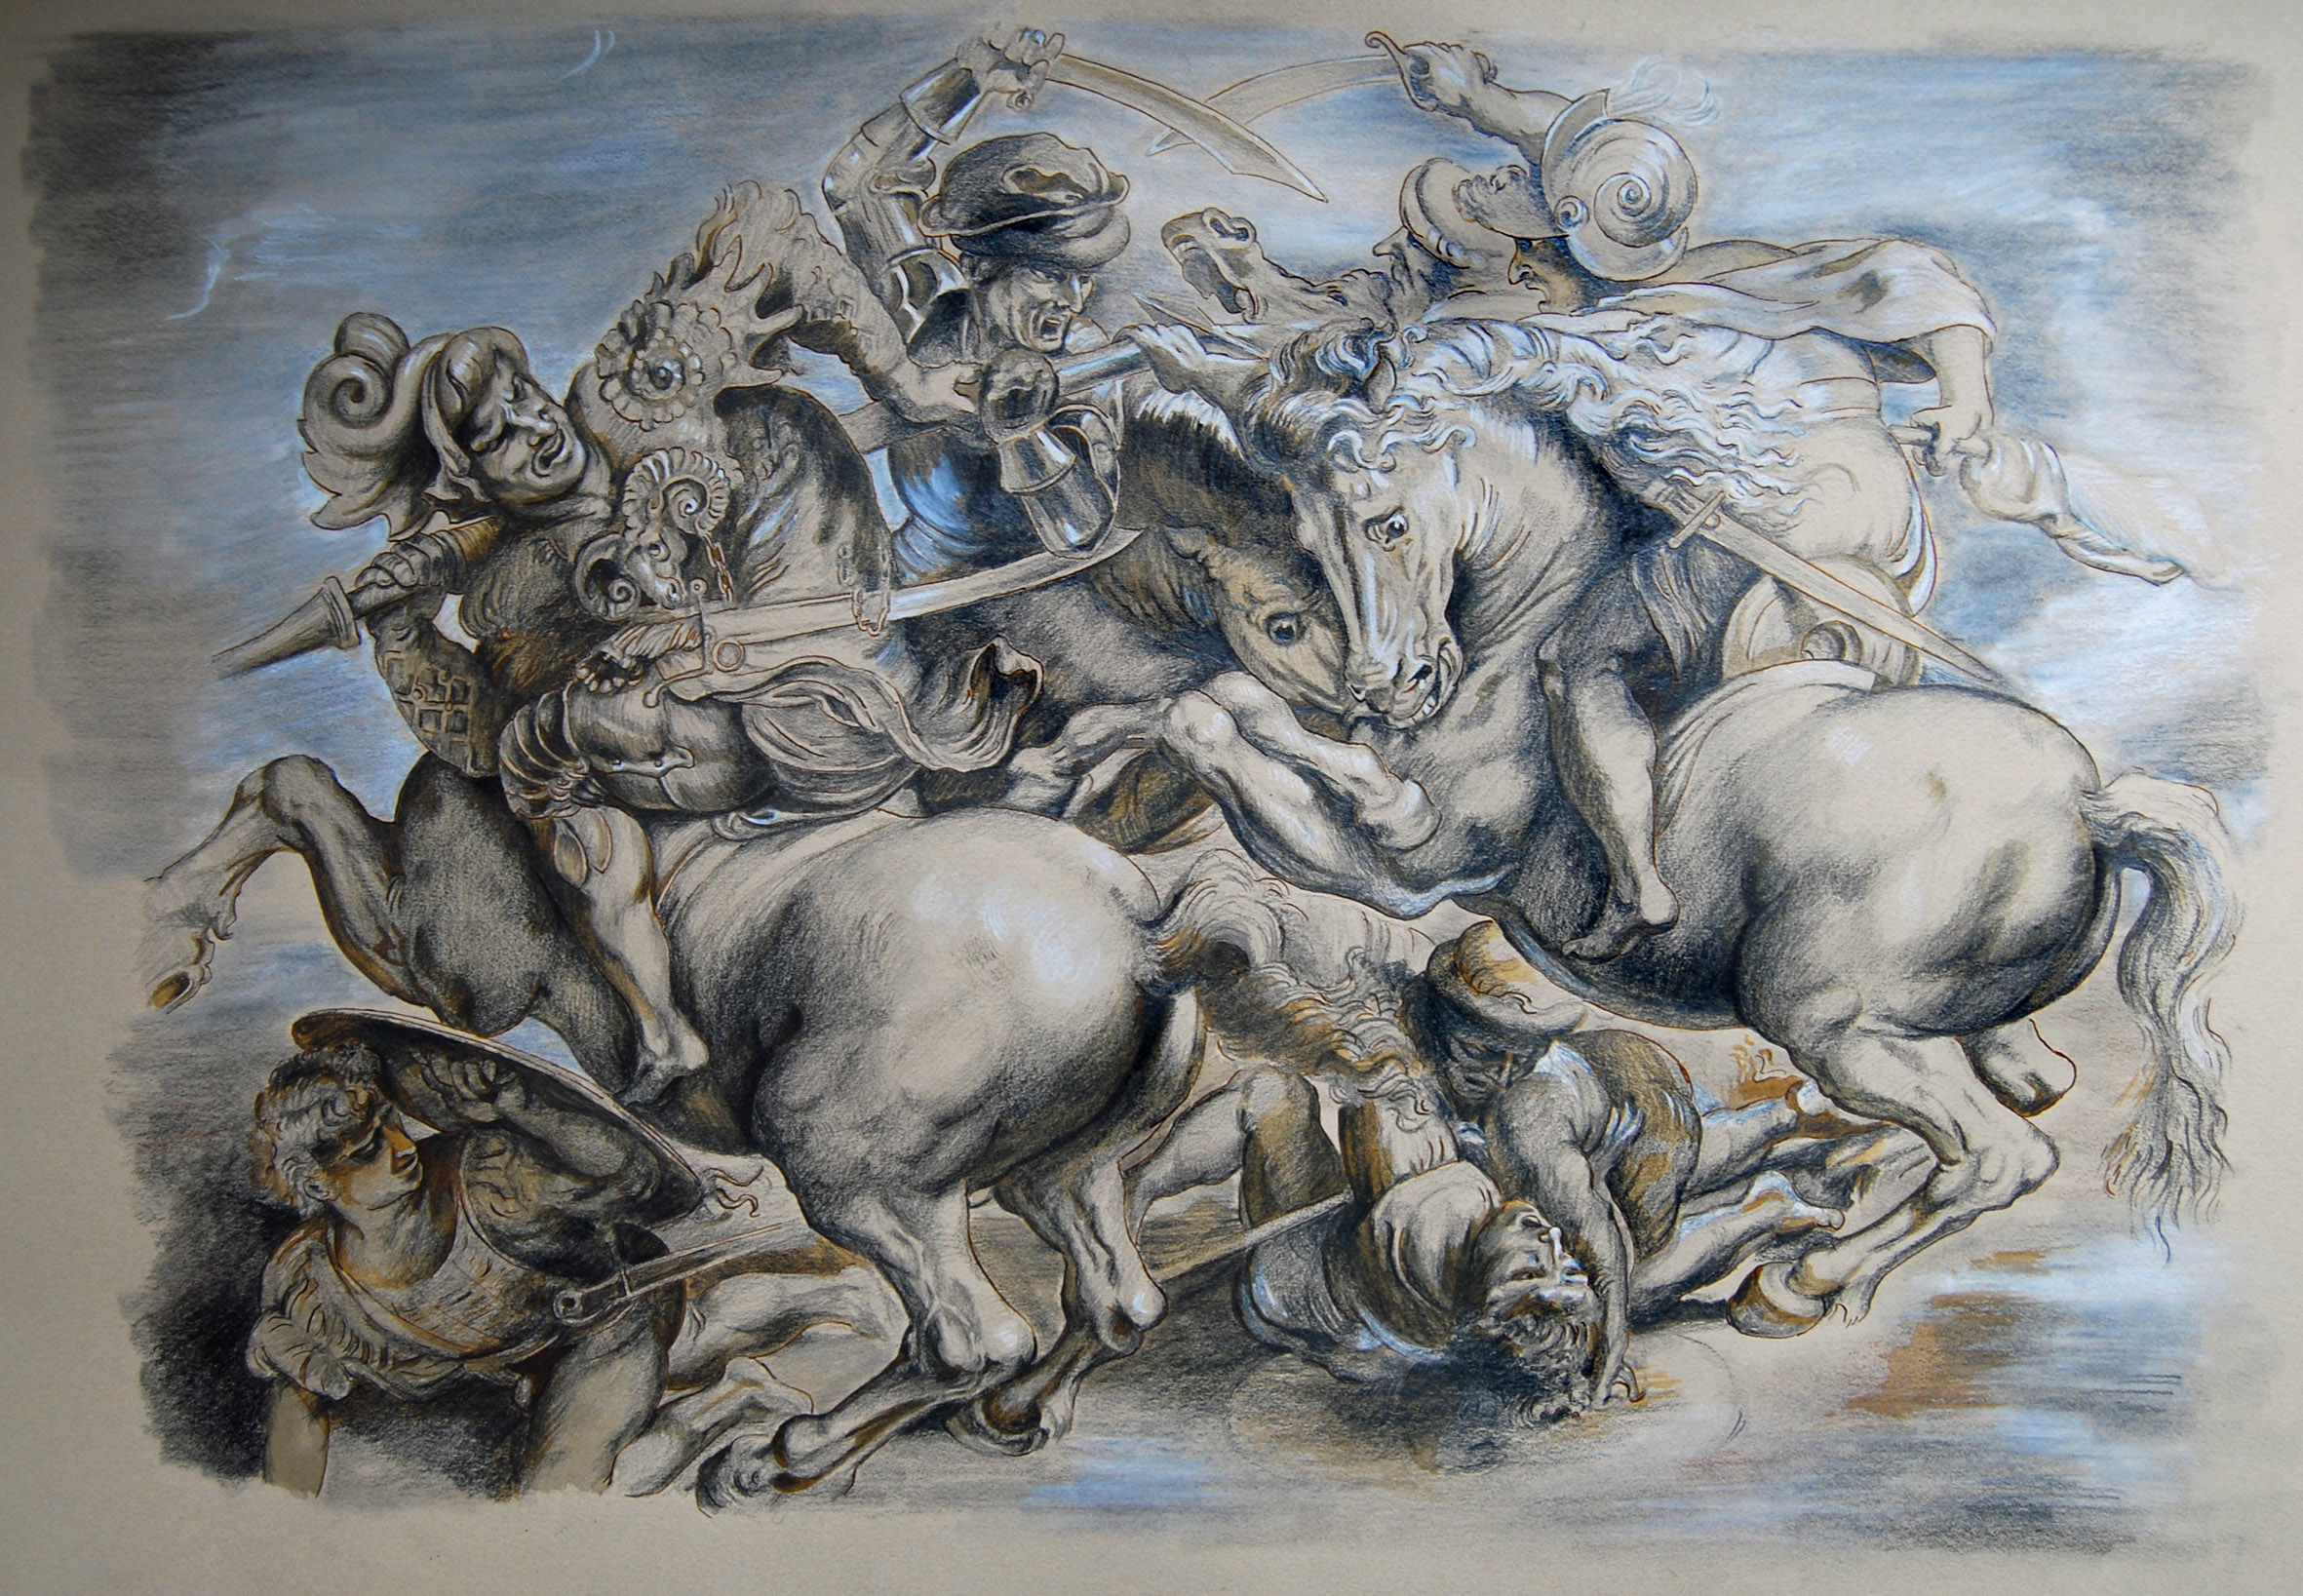 After Rubens' Battle of Anghiari